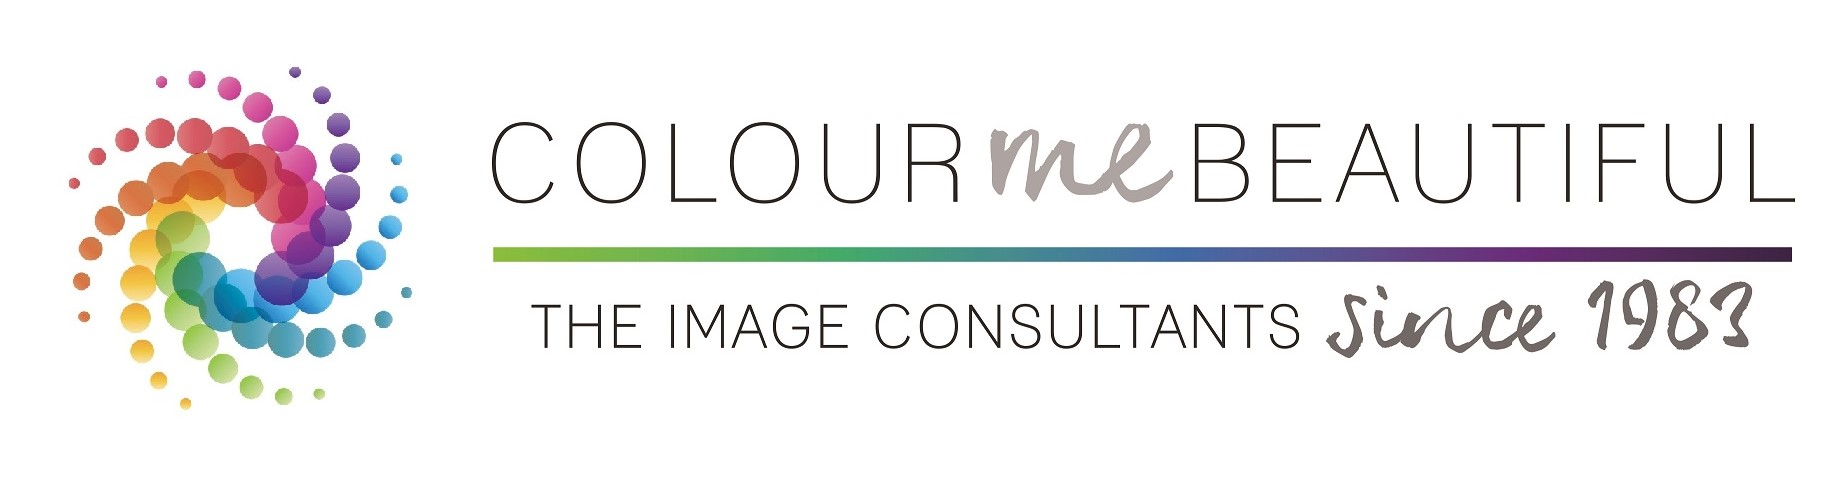 Colour Me Beautiful Sverige logo